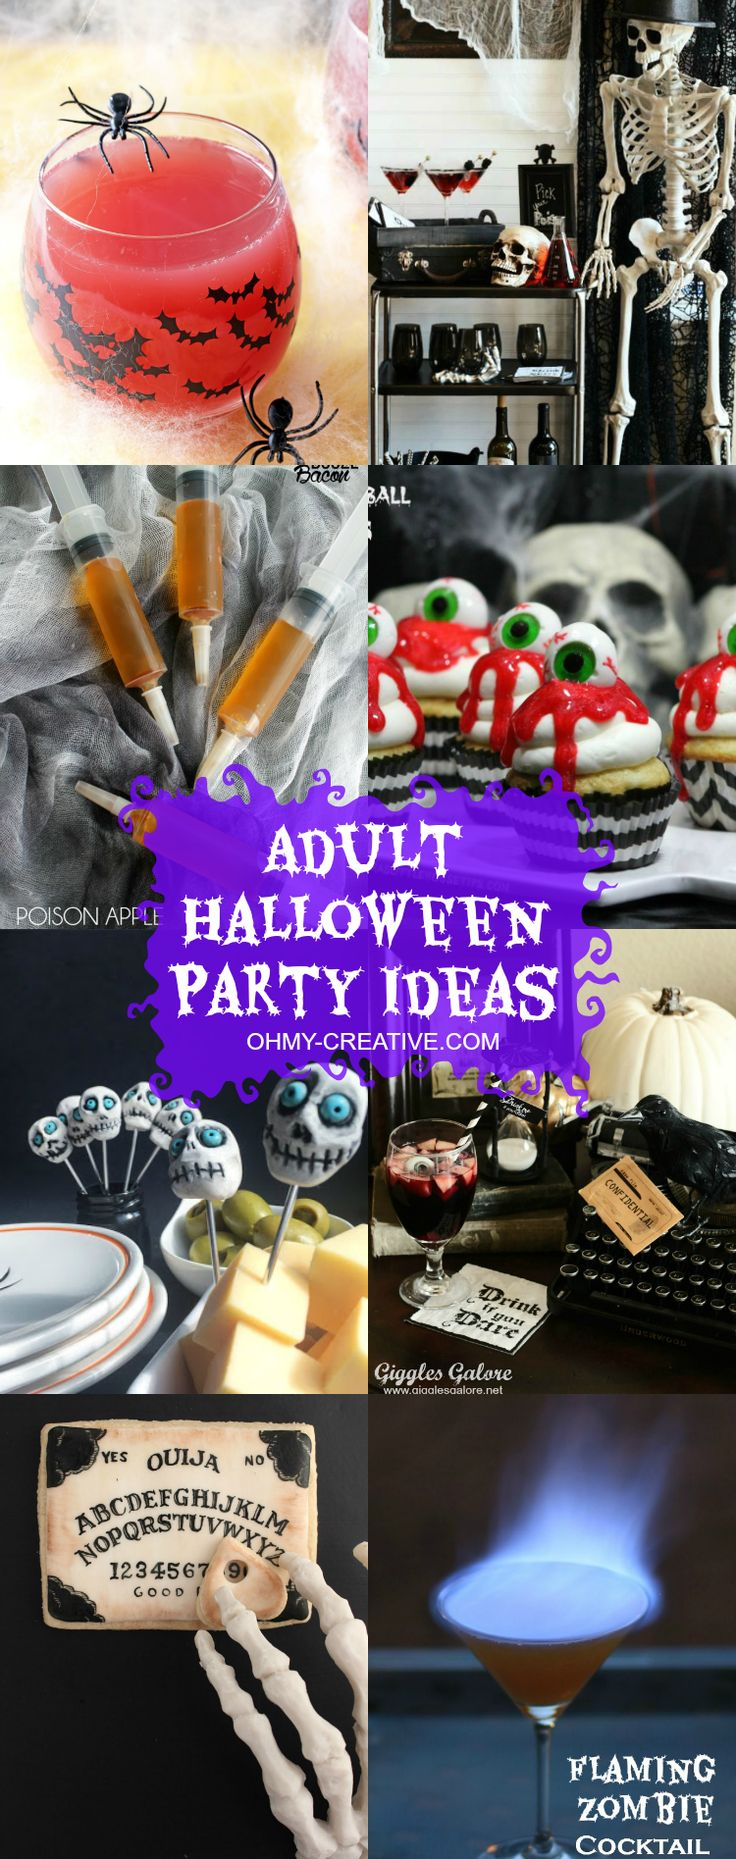 Best 25+ Adult halloween ideas on Pinterest | Adult halloween ...